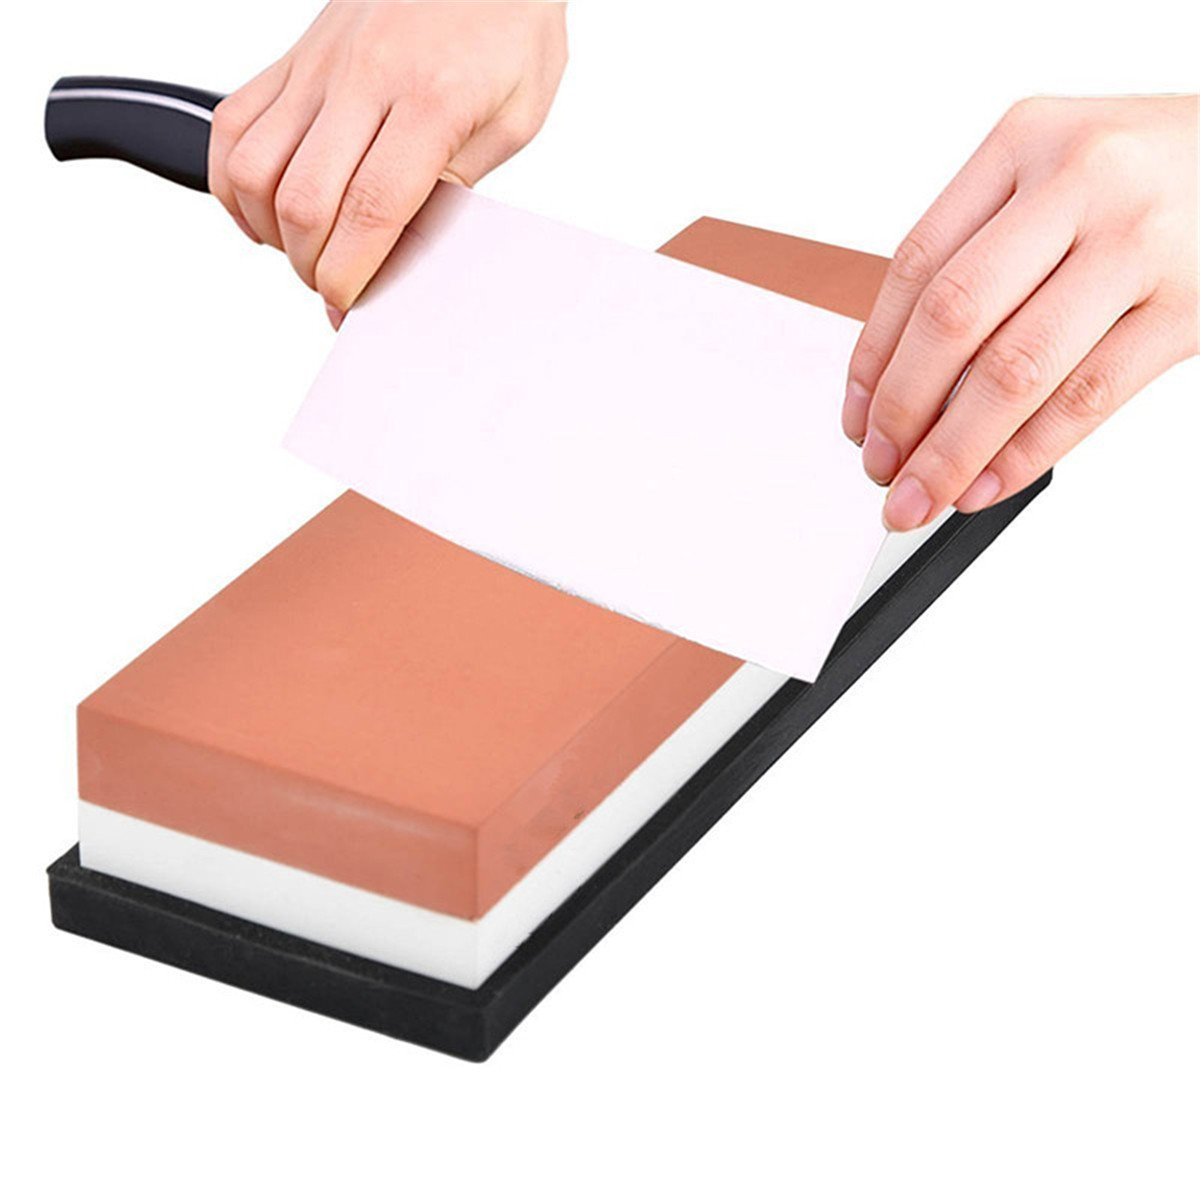 Whetstone — Lupan Double-Sided Knife Sharpening Stone Grit with sturdy non-slip rubber Base (3000/8000) by Lupan (Image #3)